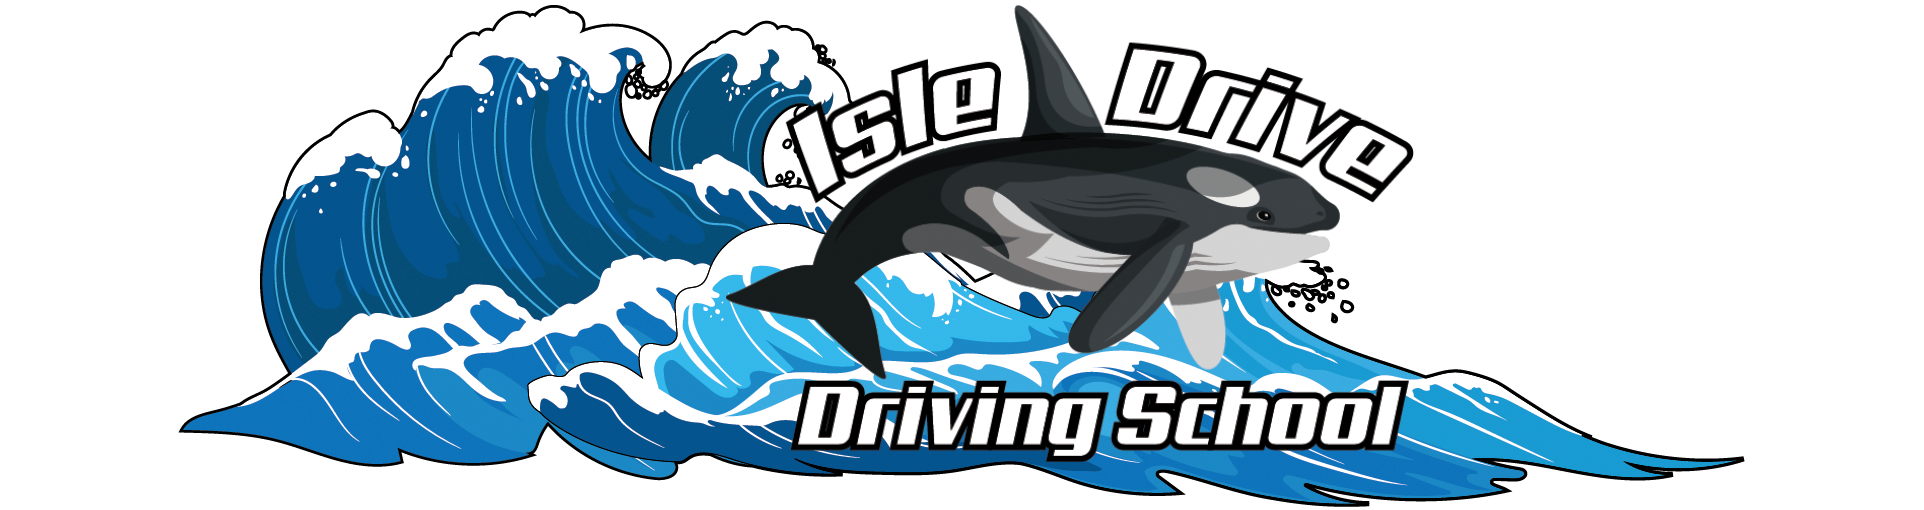 Isle Drive Driving School: Driver Training